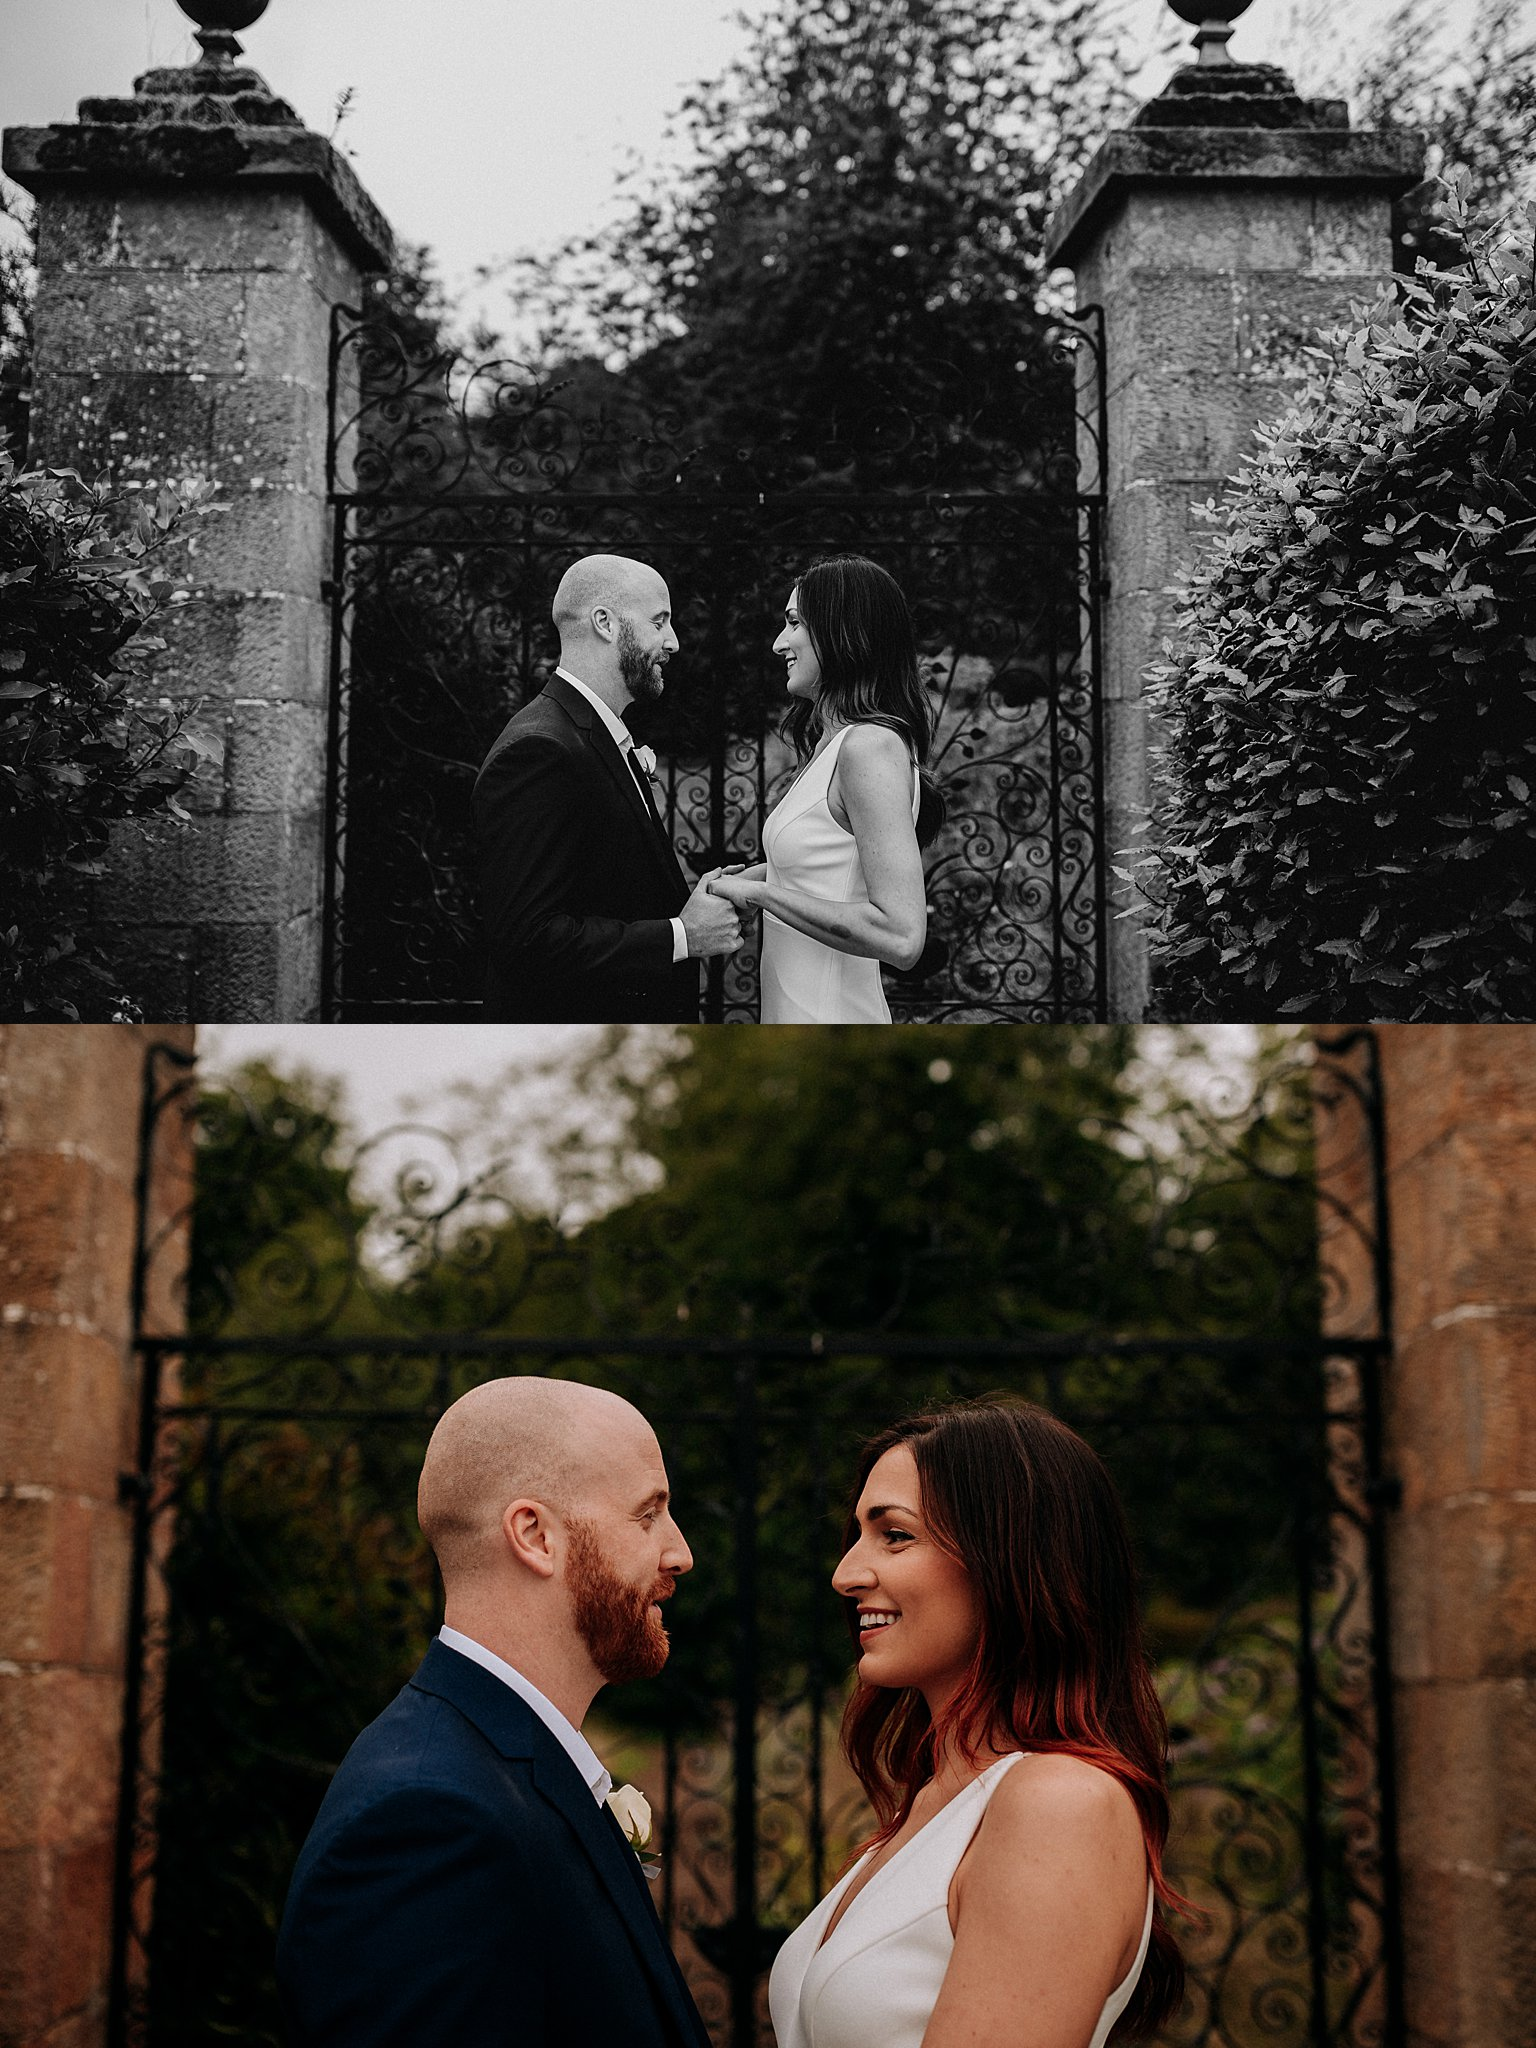 Elopement Wedding Photographer UK